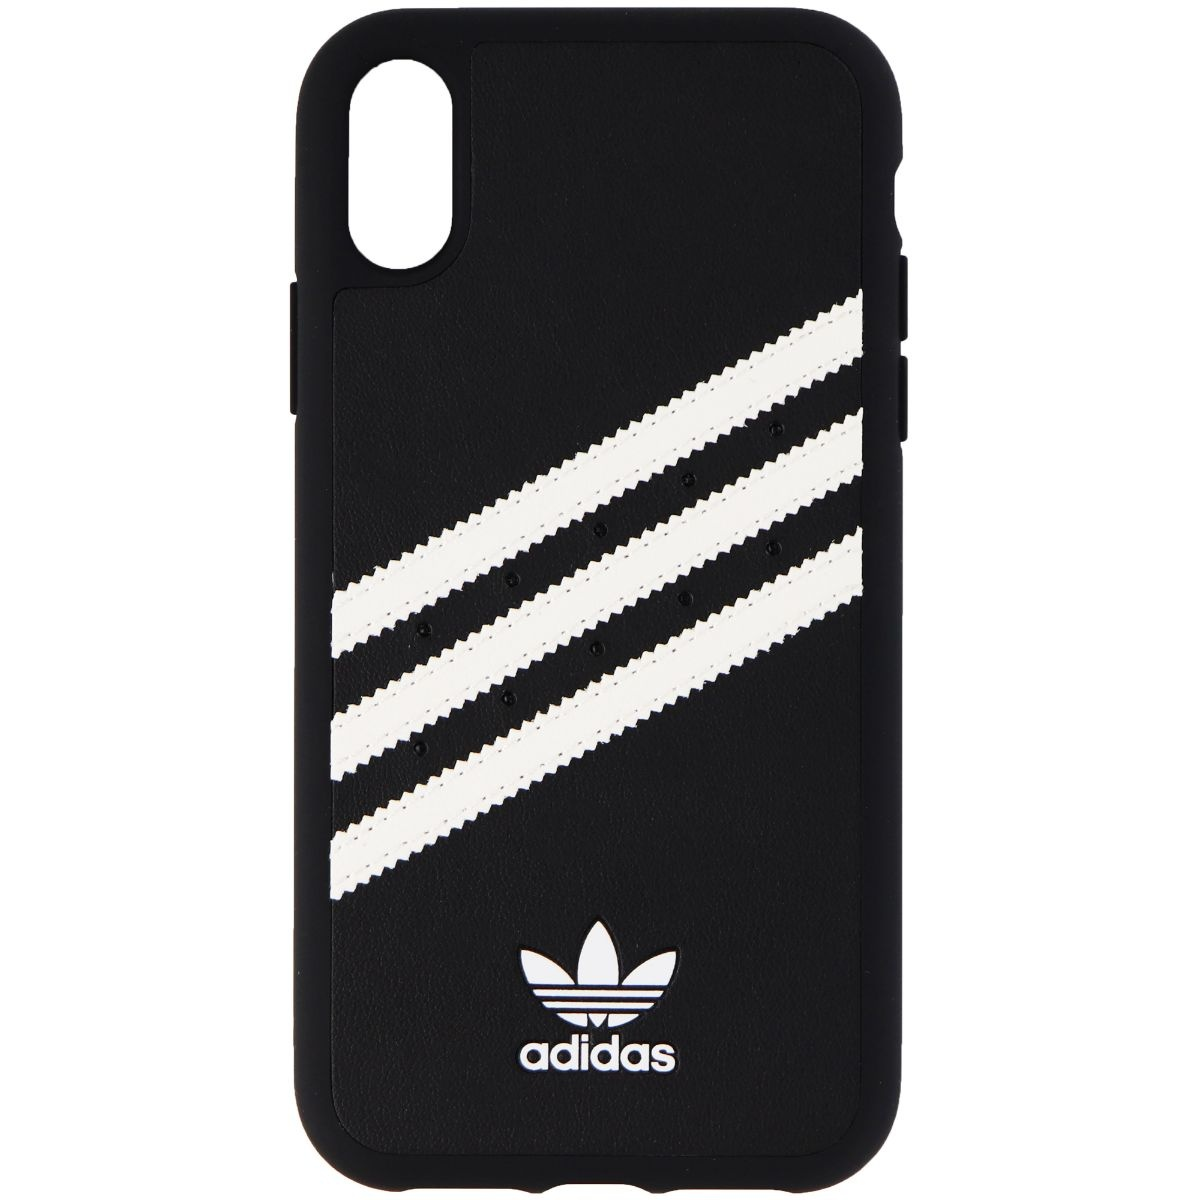 Adidas 33260 Samba Case for iPhone Xs Max - Black w/ White Stripes